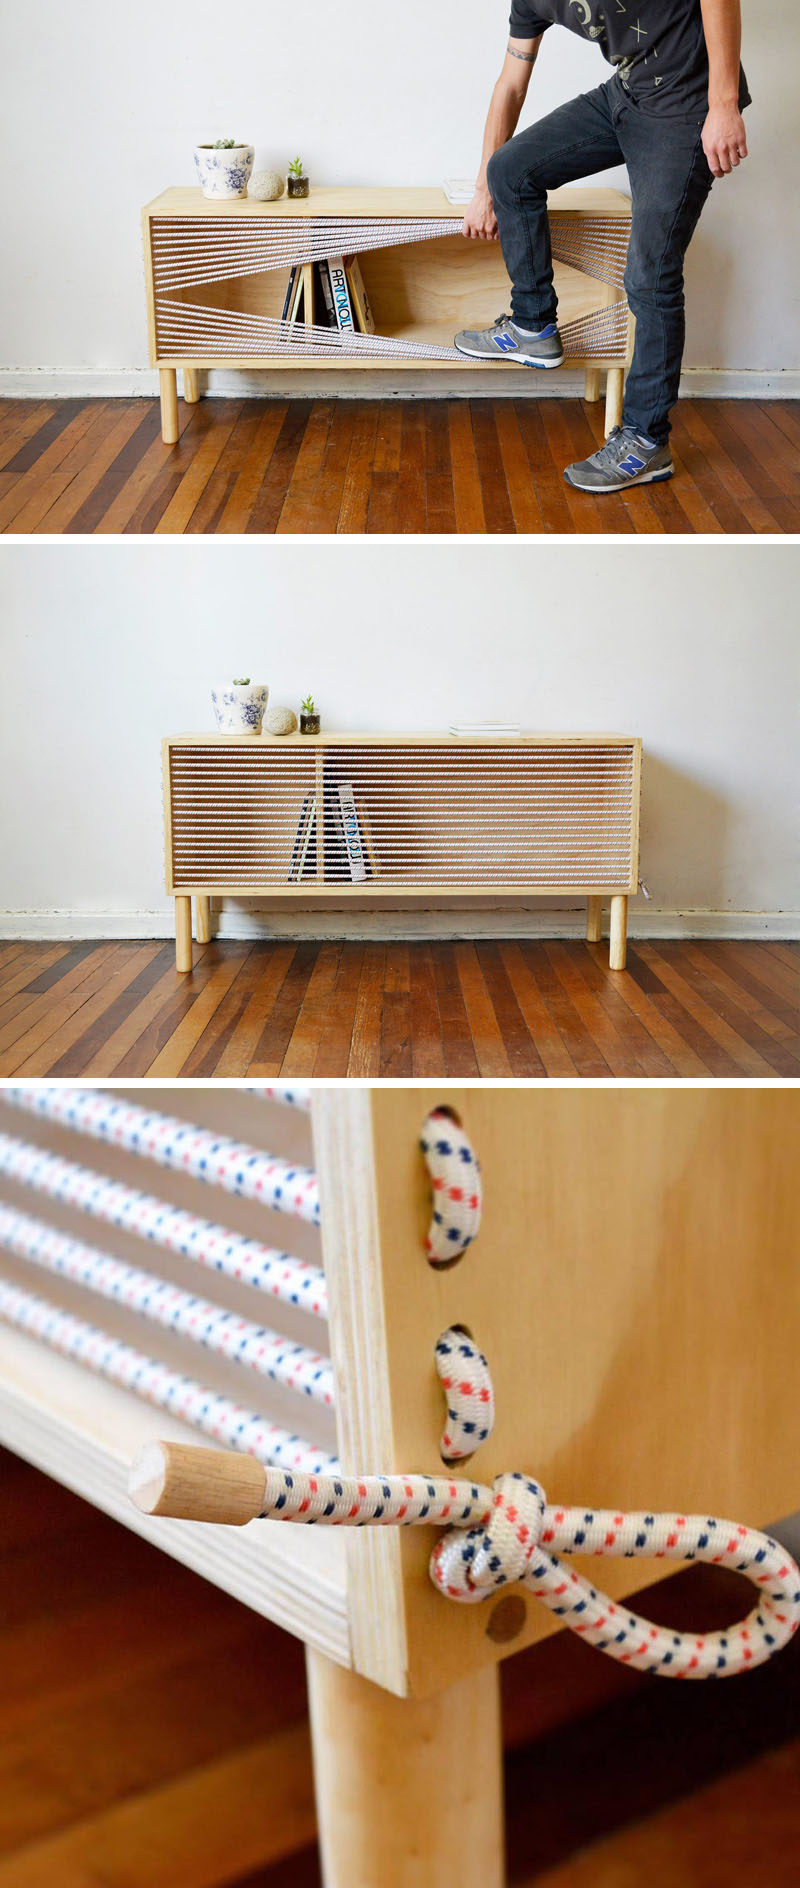 This Wooden Sideboard Was Inspired By The Ropes Of A Boxing Ring.